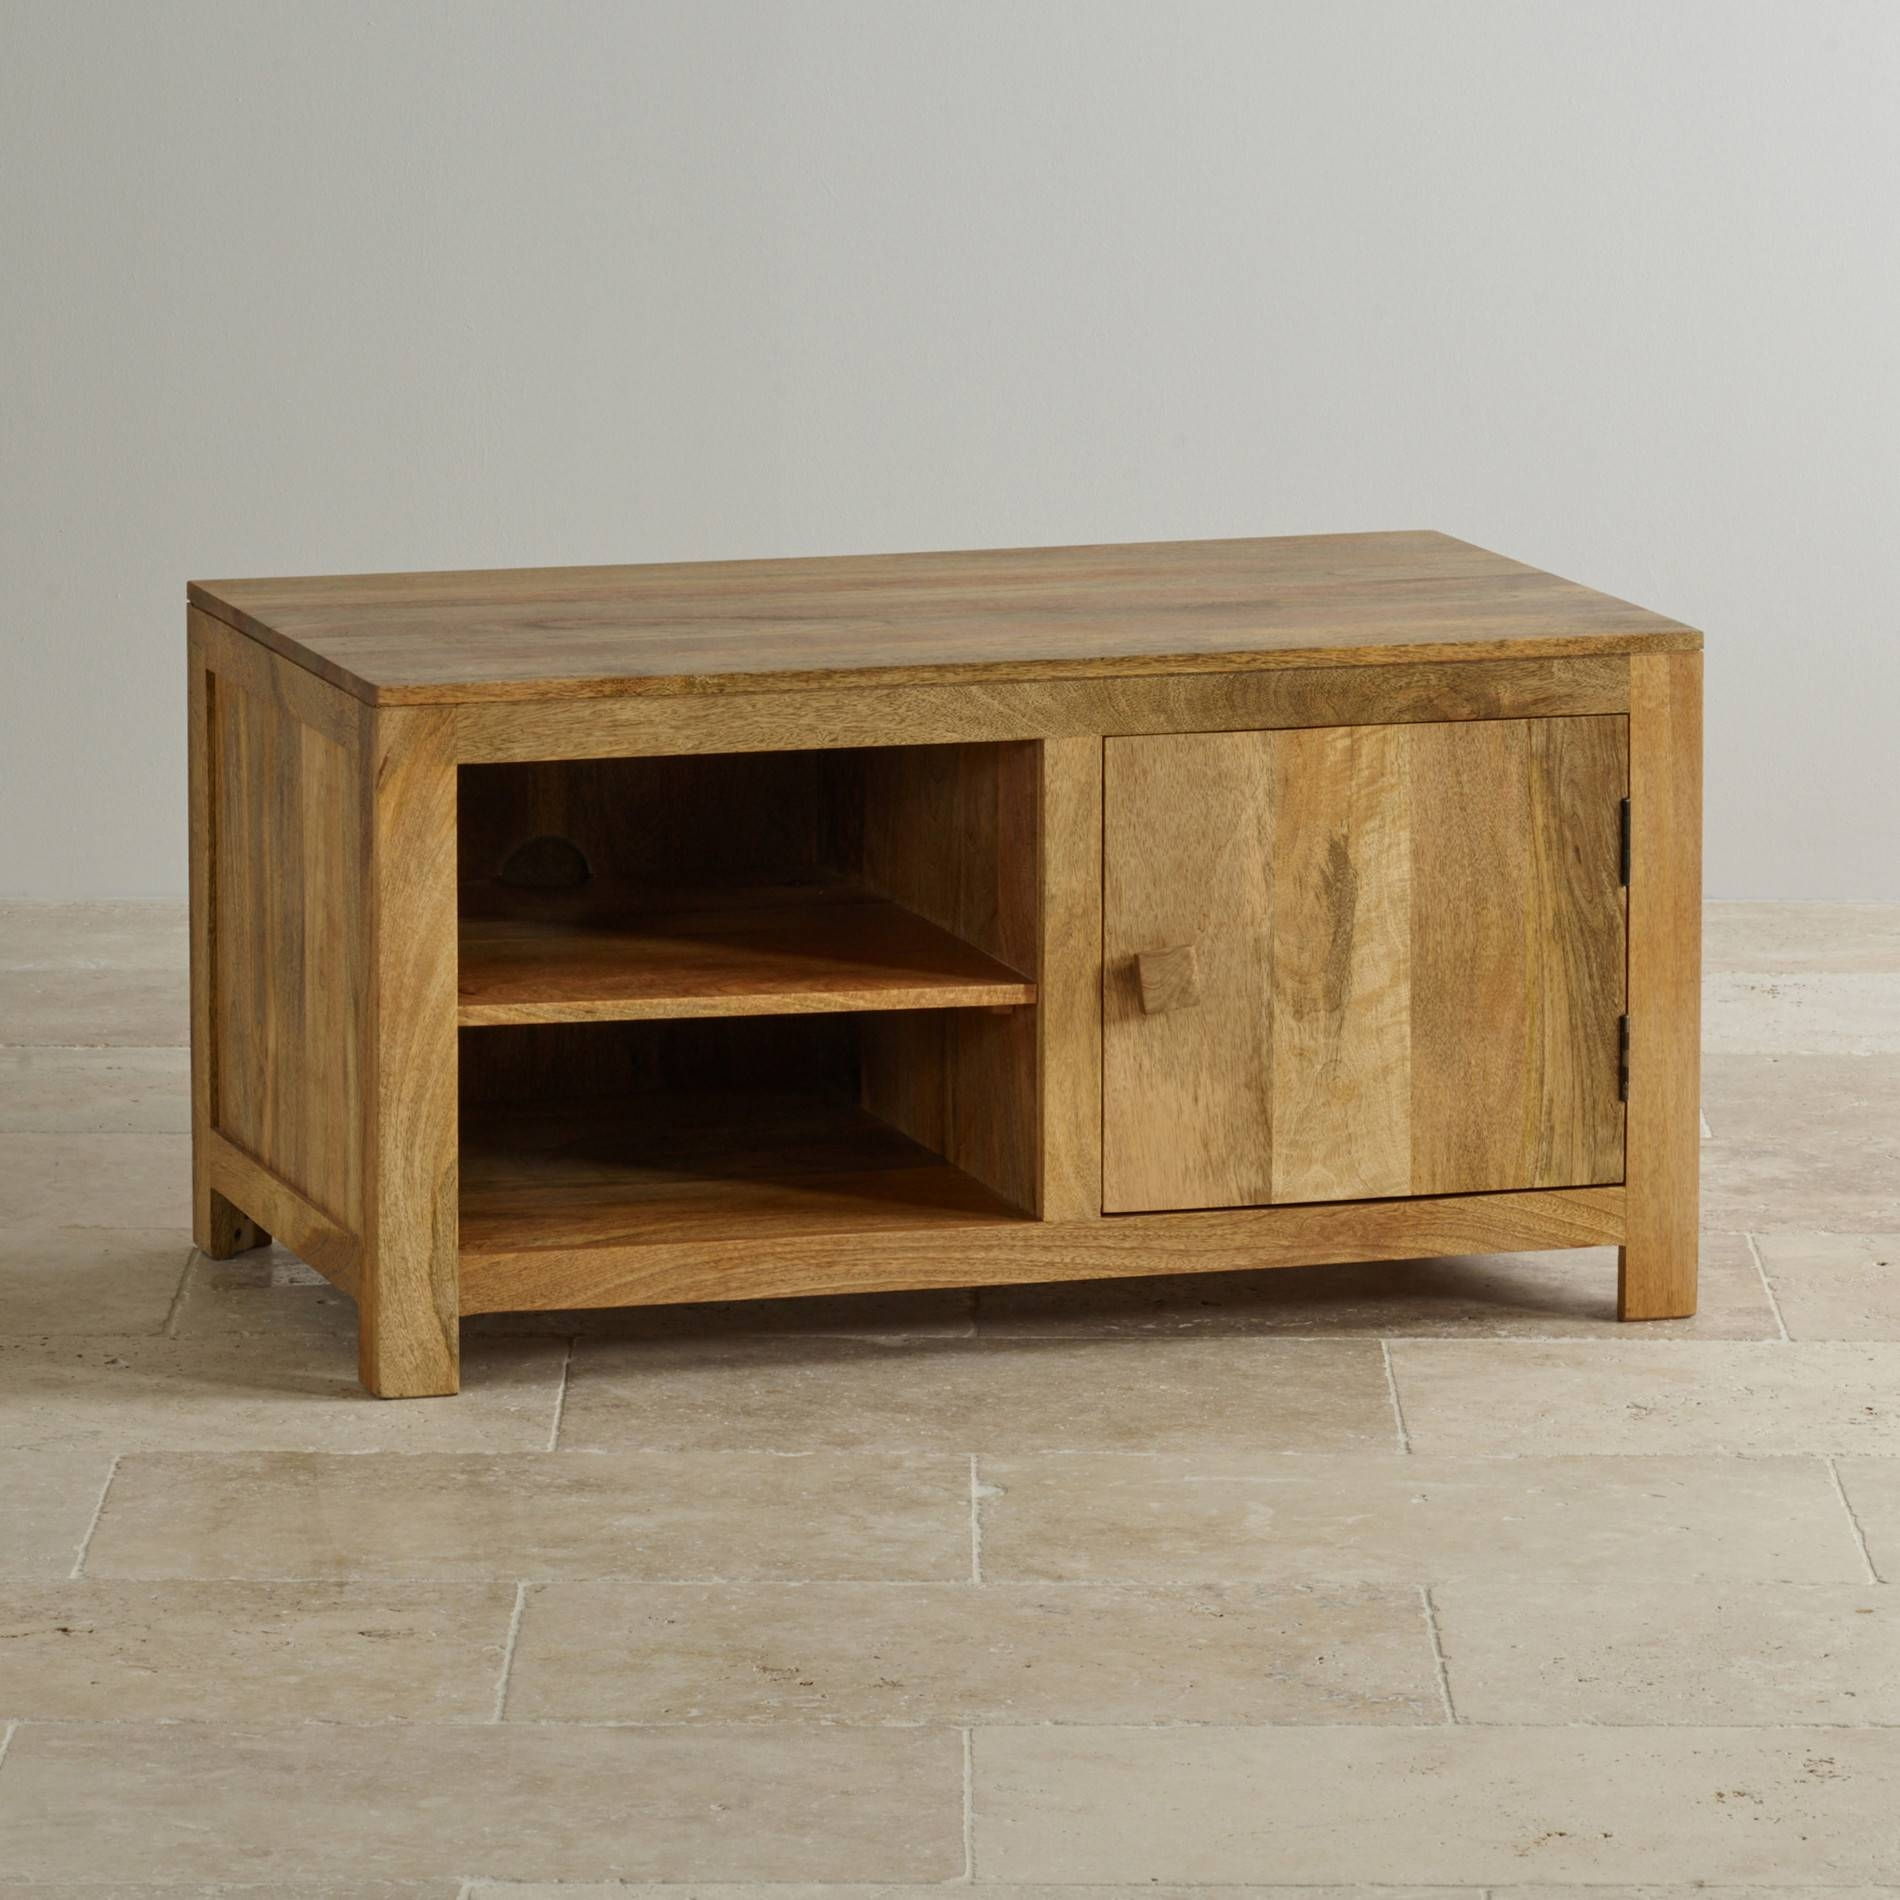 Mantis Light Widescreen Tv + Dvd Cabinet In Natural Solid Mango Intended For Mango Tv Units (View 11 of 15)